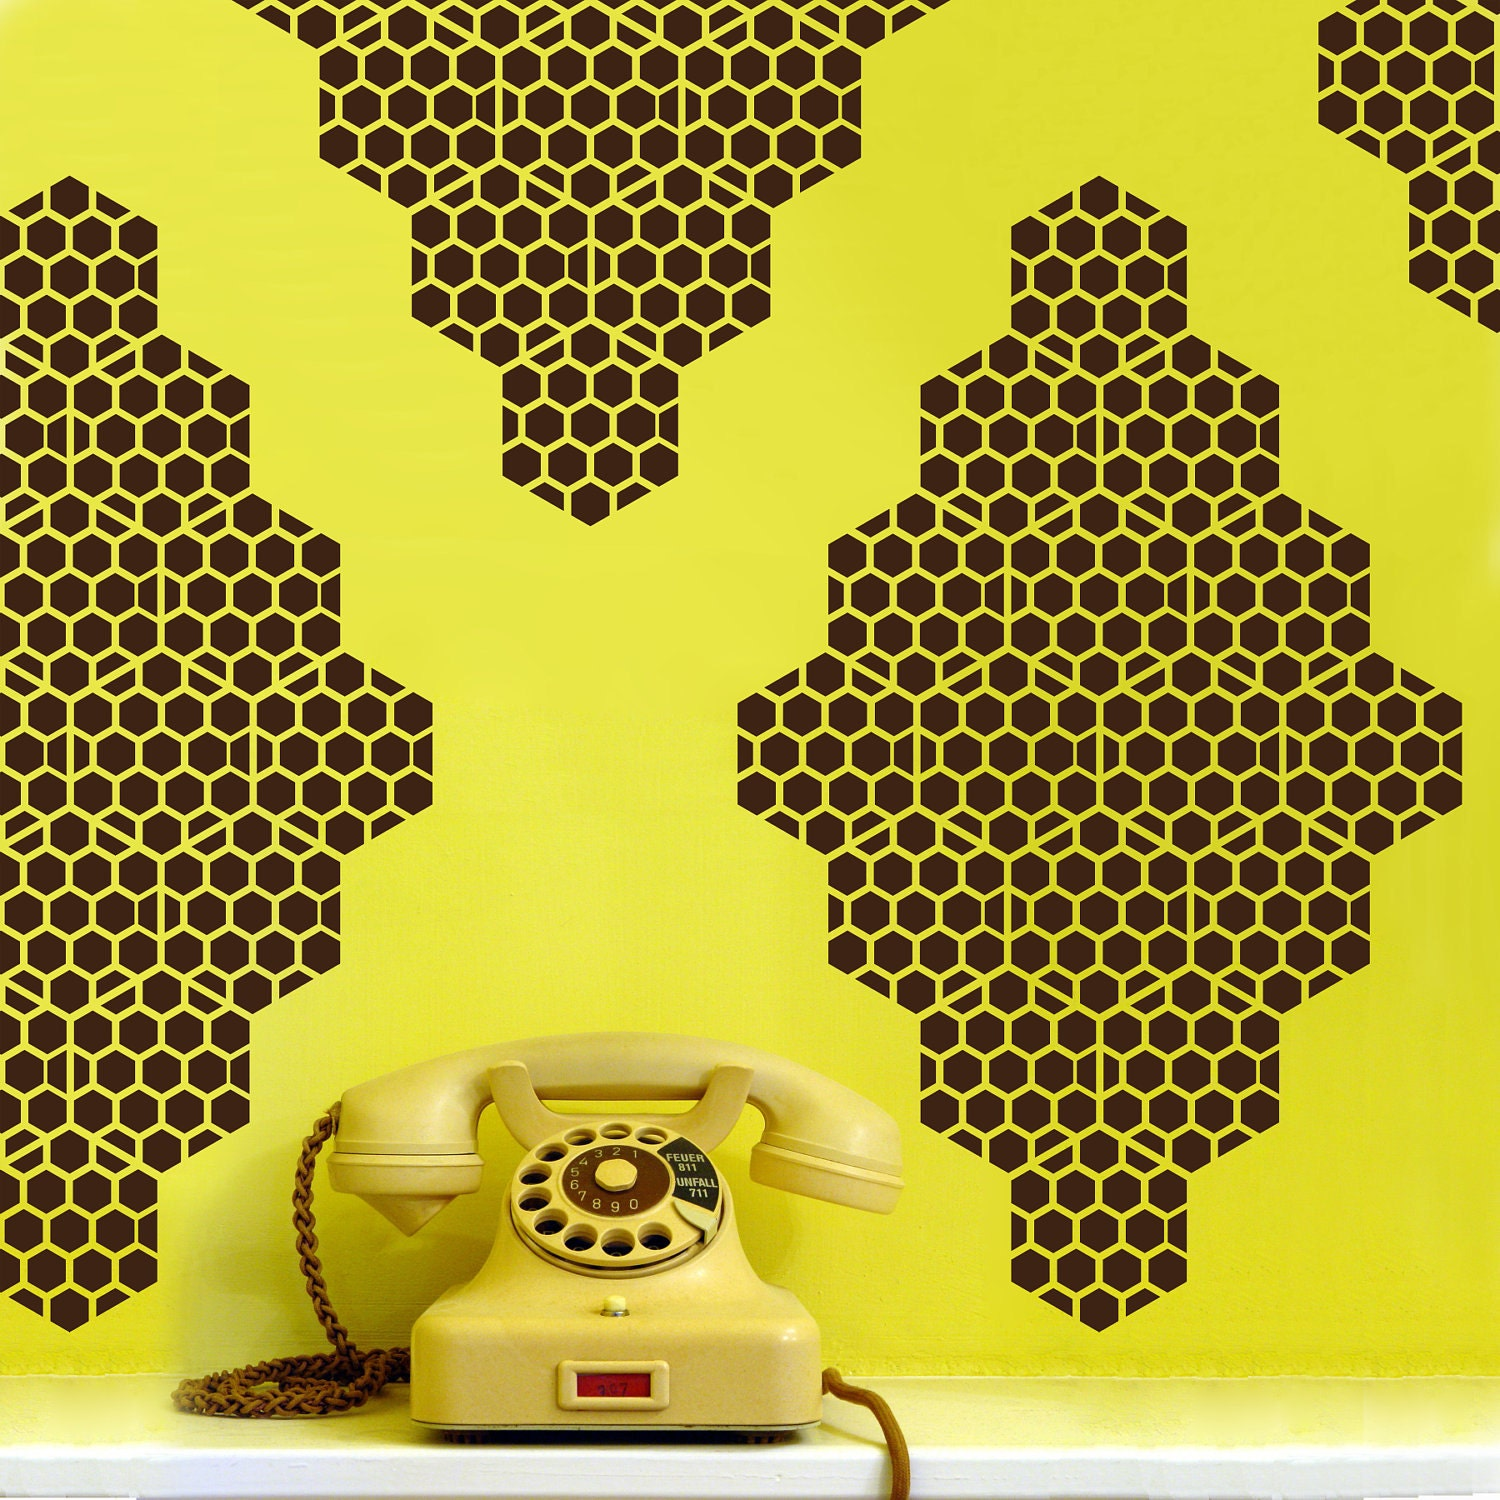 Honey bee diamonds vinyl wall decals 10 graphics vinyl wall for Bumble bee mural